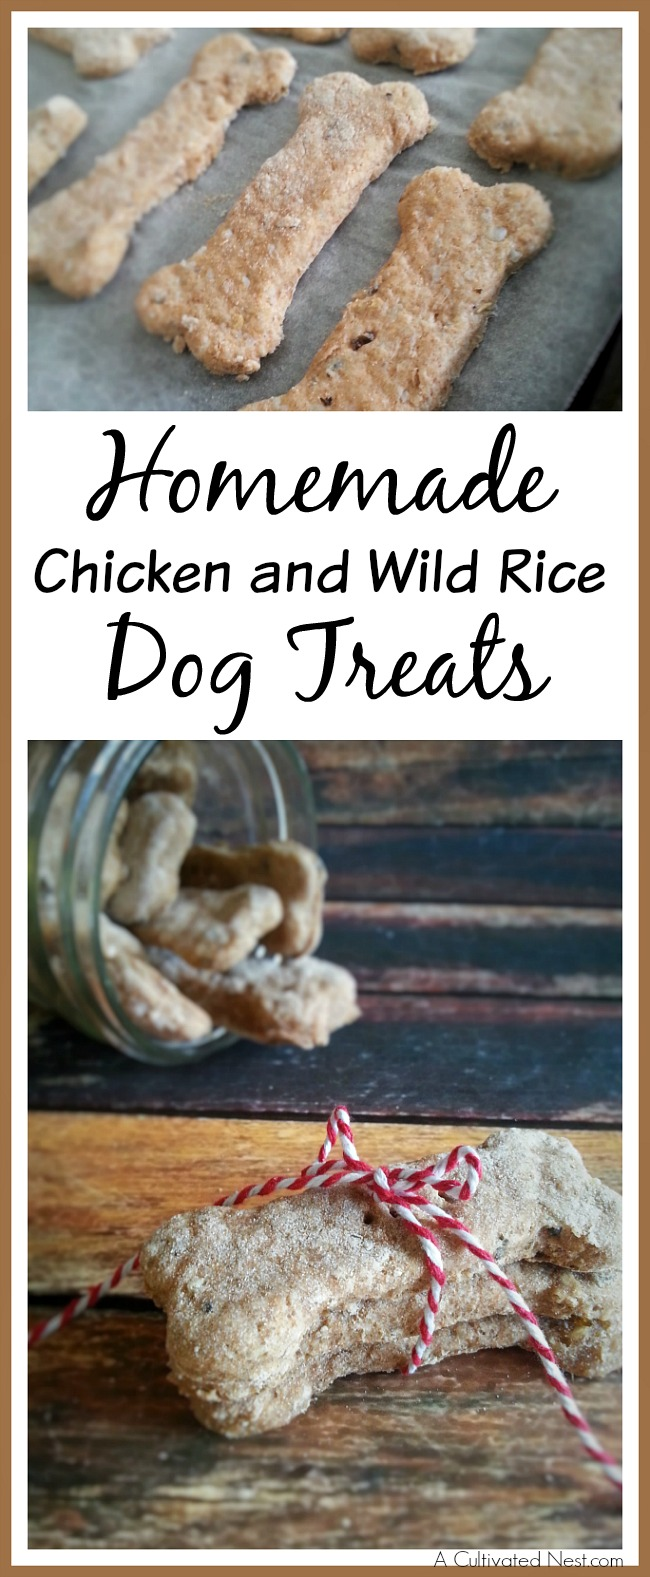 10 Yummy Dog Treats You Can Make at Home